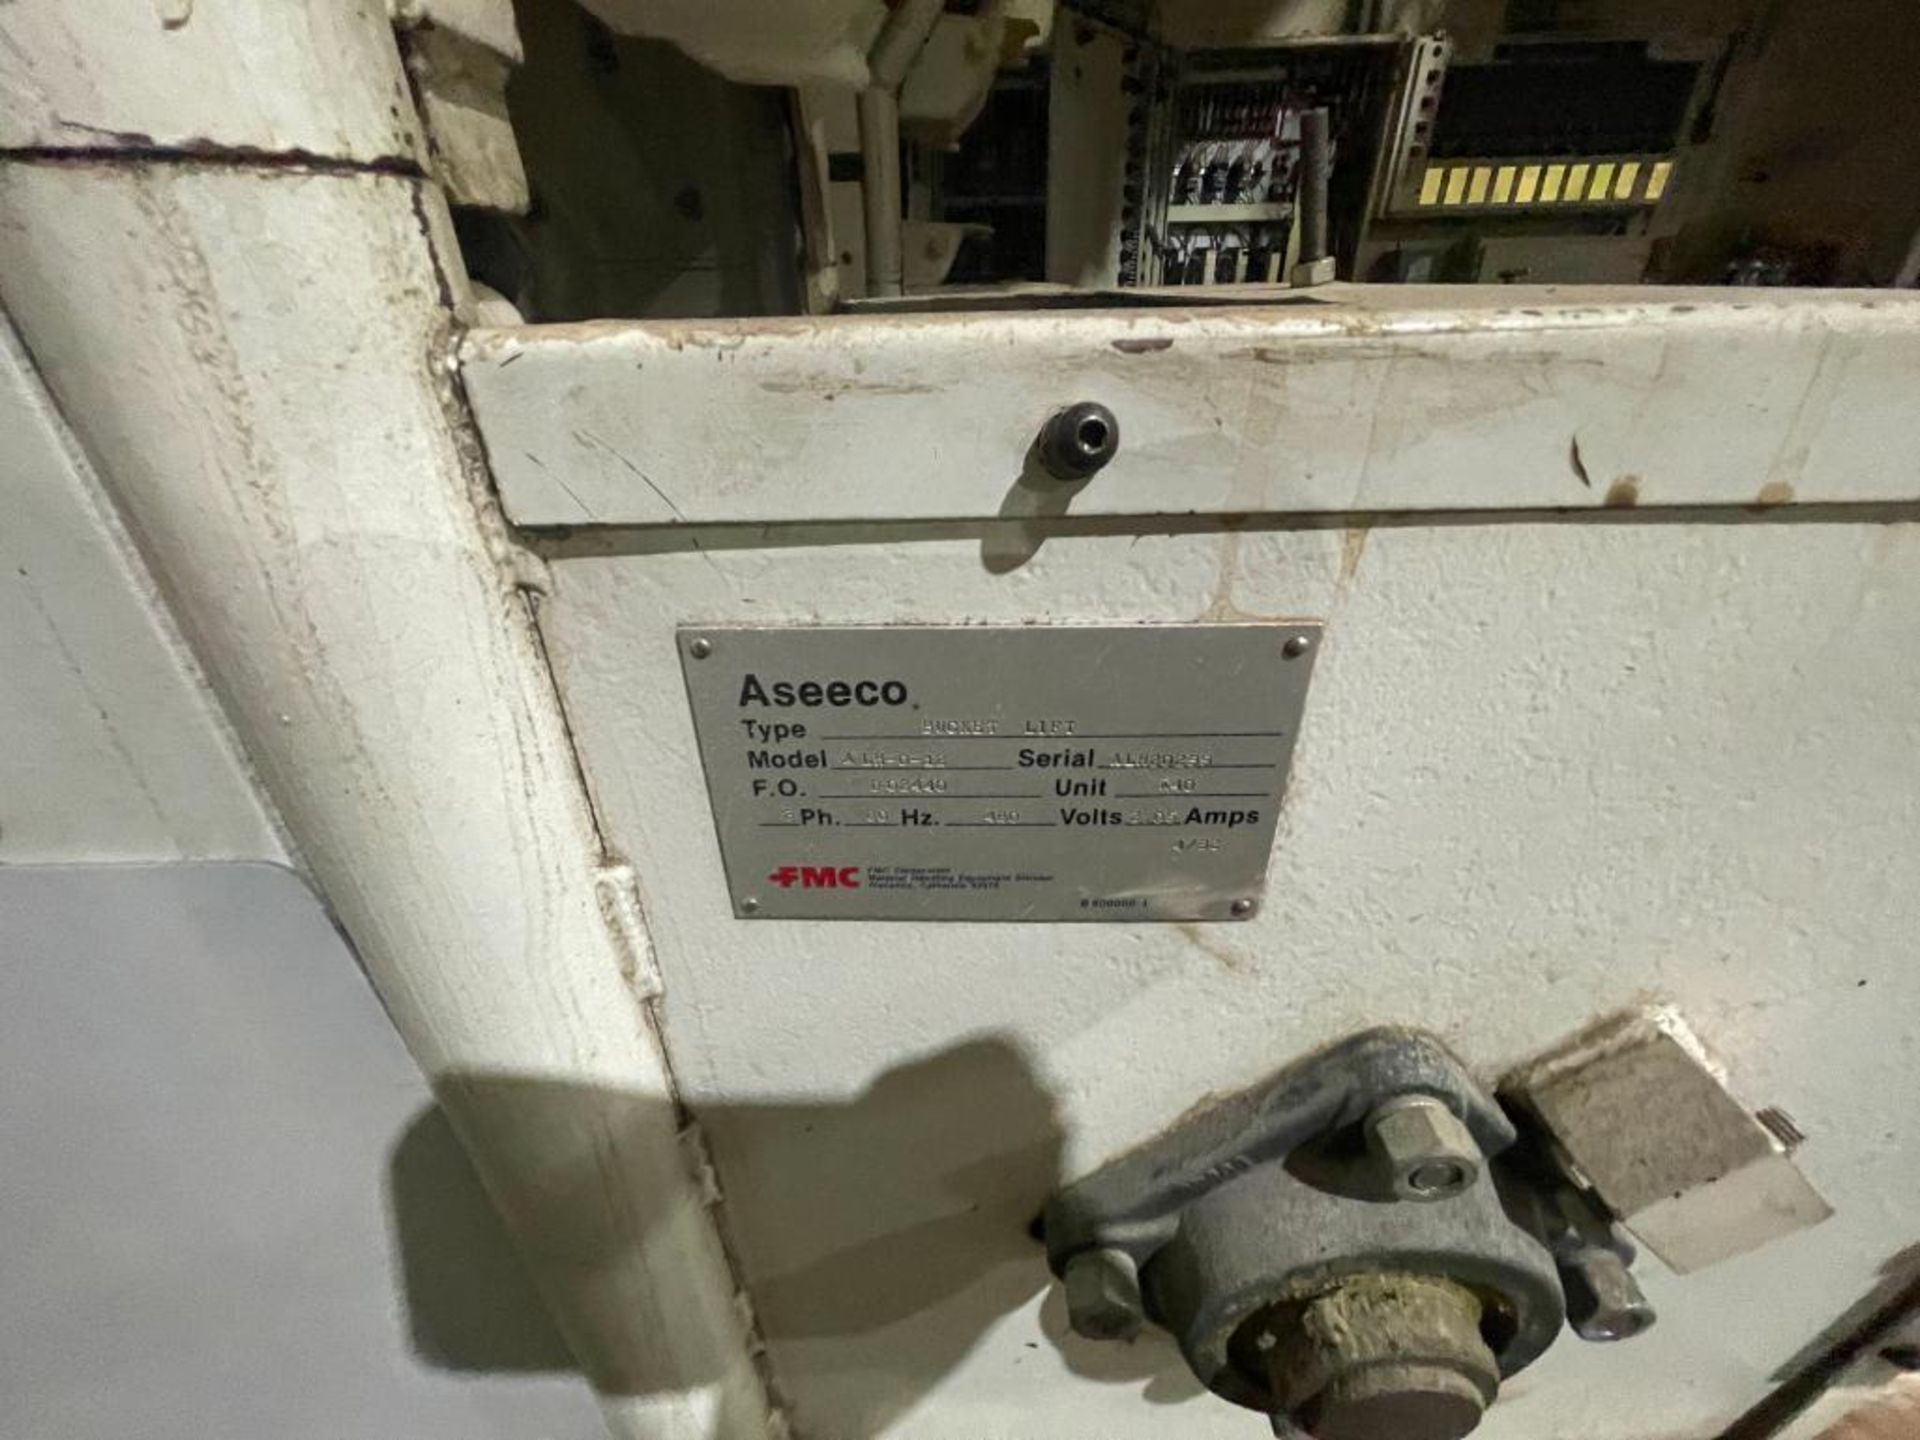 1992 Aseeco overlapping bucket incline conveyor, model ALH-0-12, Z-shape - Image 5 of 11